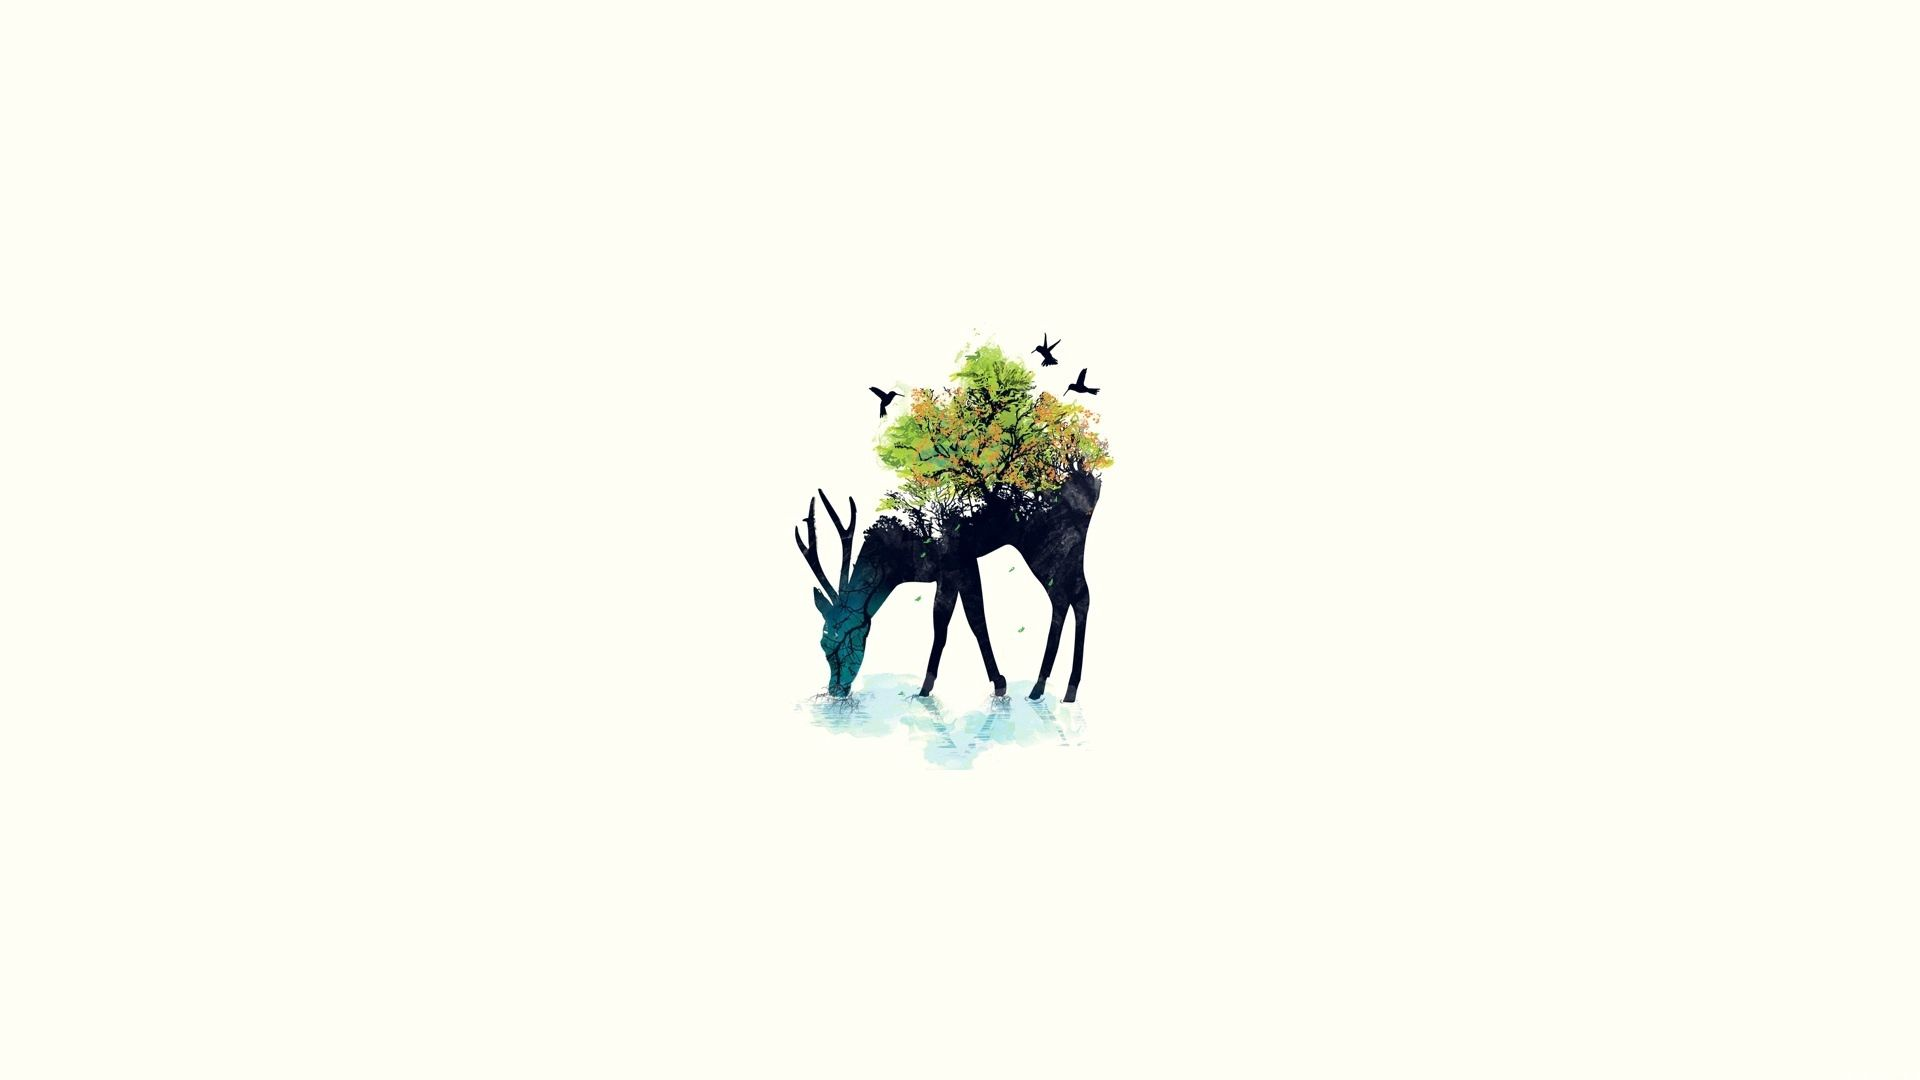 96216 download wallpaper Minimalism, Deer, Vector, Background, Nature screensavers and pictures for free